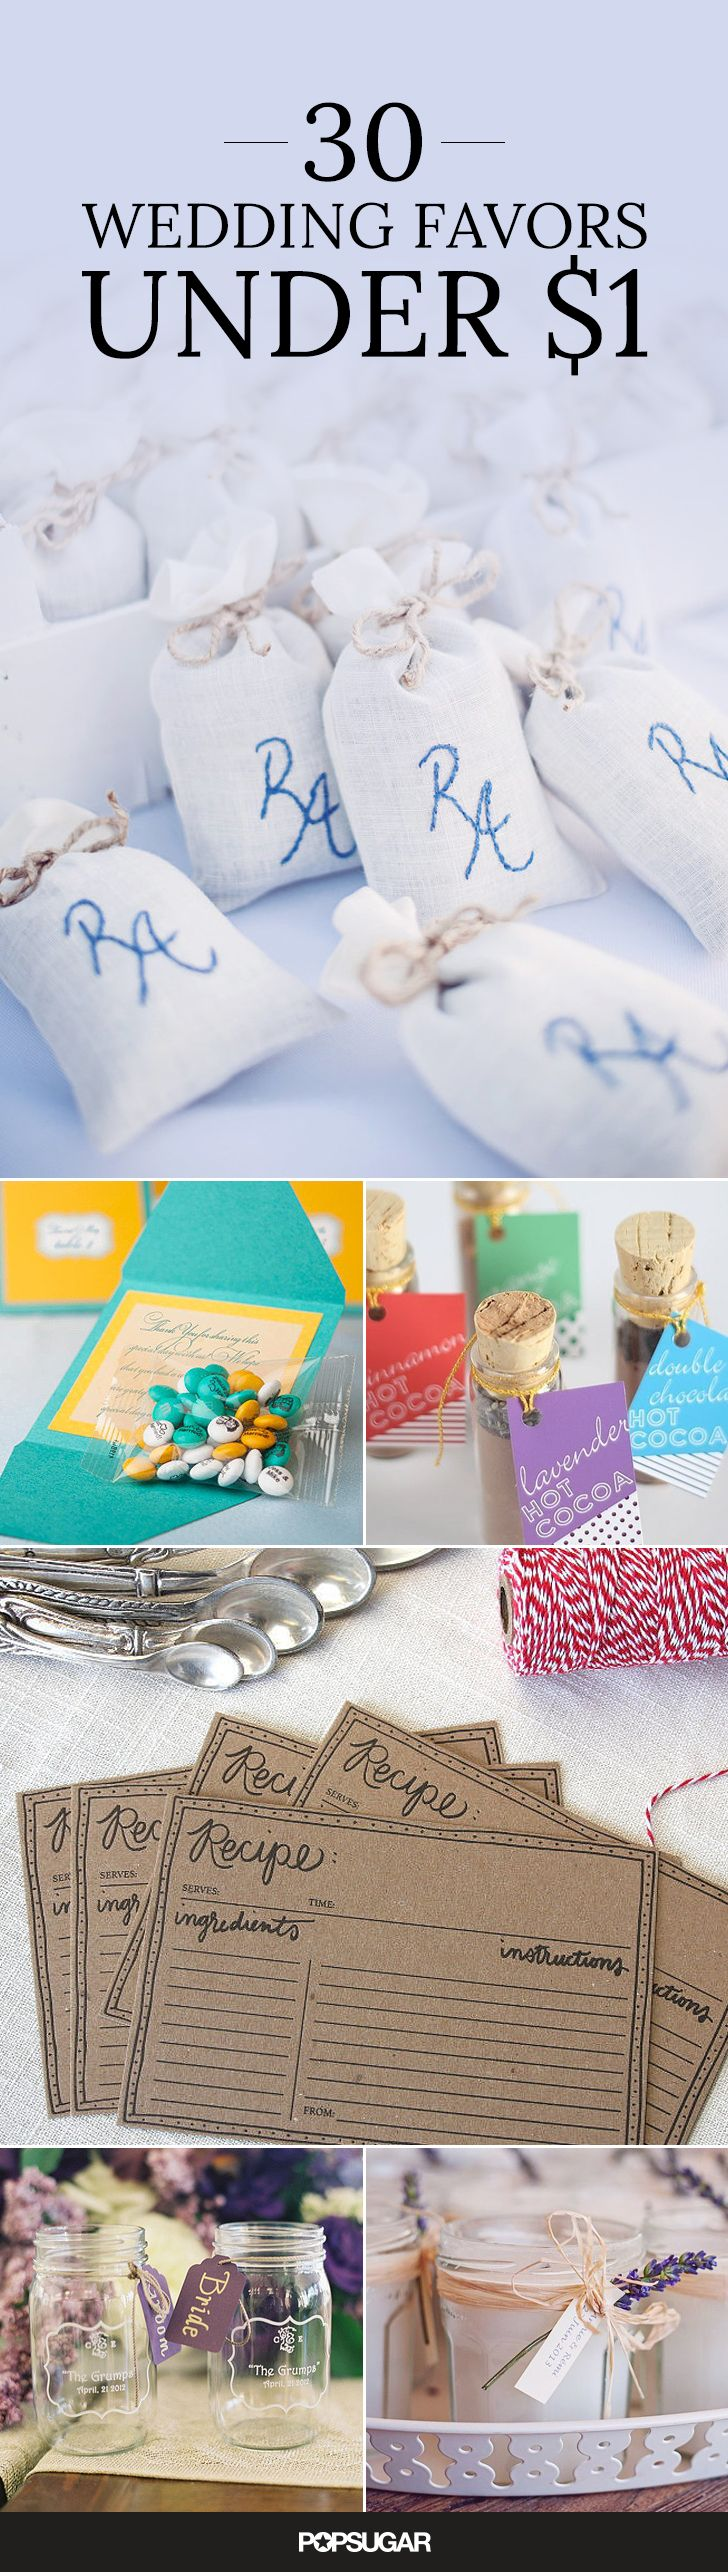 30 Wedding Favors You Won T Believe Cost Under 1 Re Spending A Lot On Your So Try To Save By Checking Out These Cute Ideas